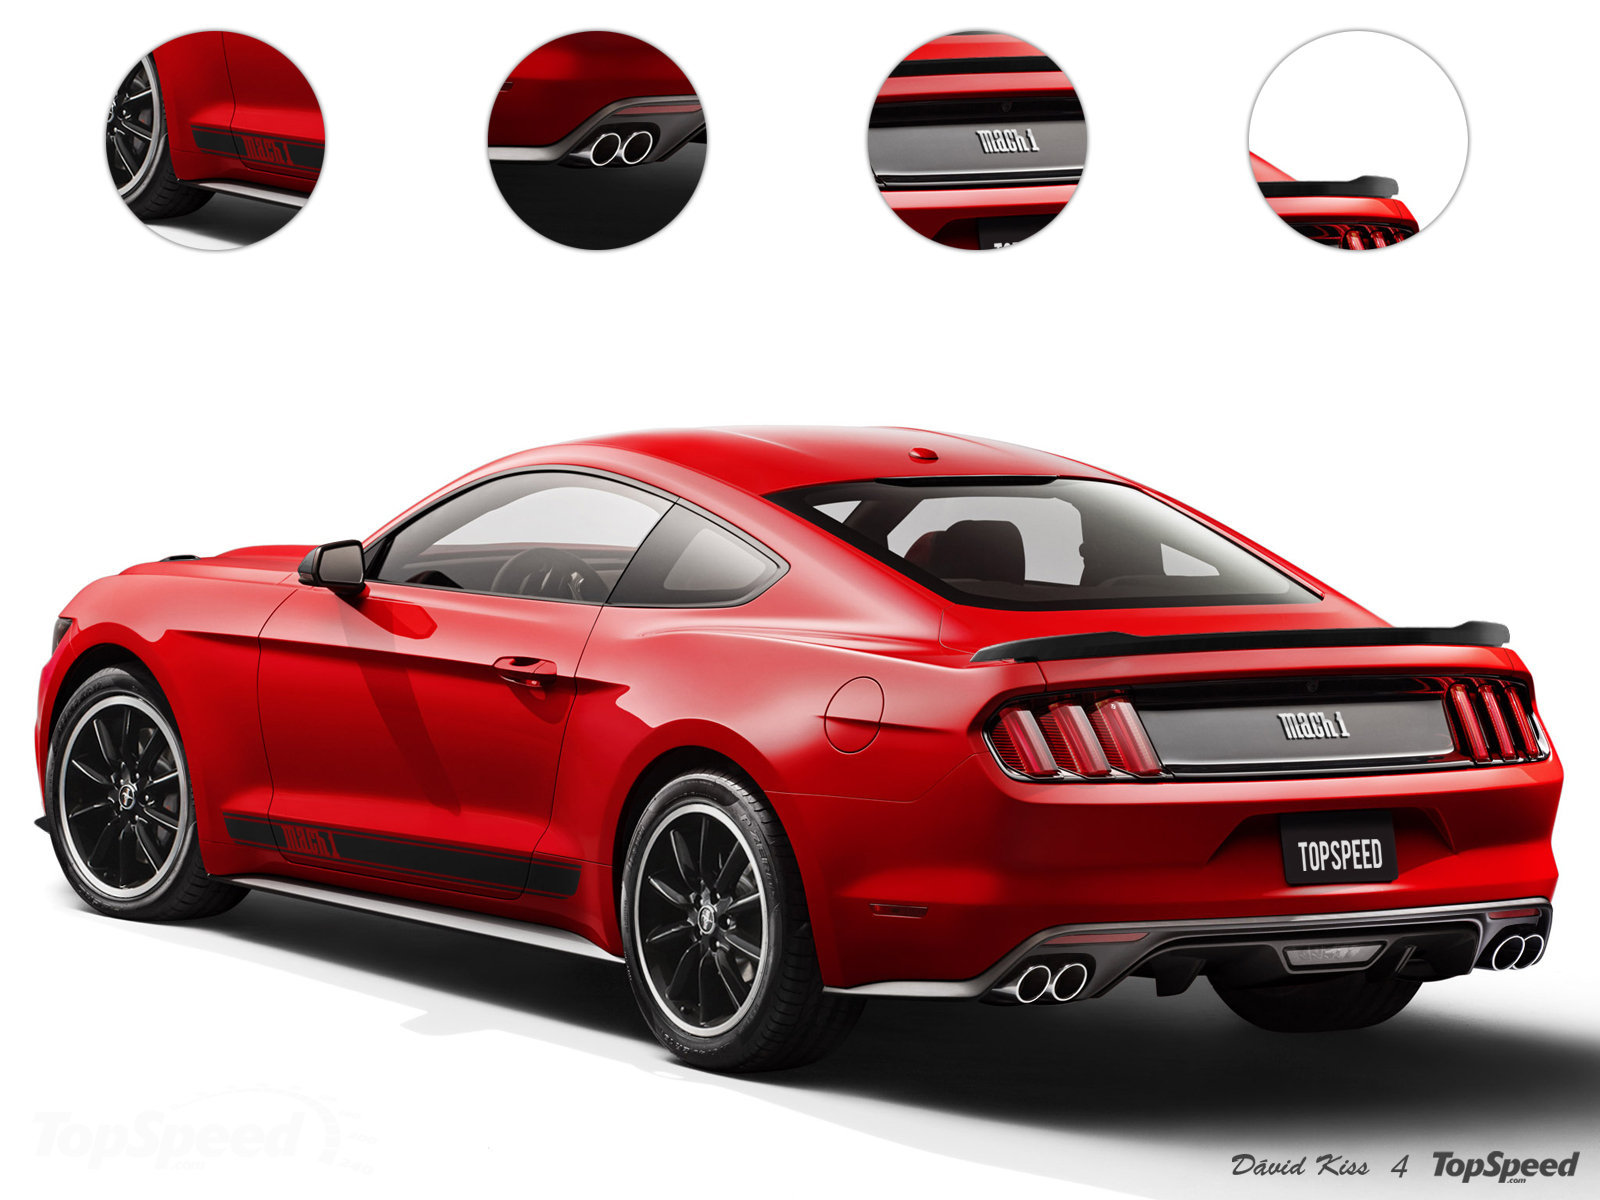 2015 Mustang Mach 1 >> Photos The 2015 Ford Mustang Mach 1 Is One Bad Mach